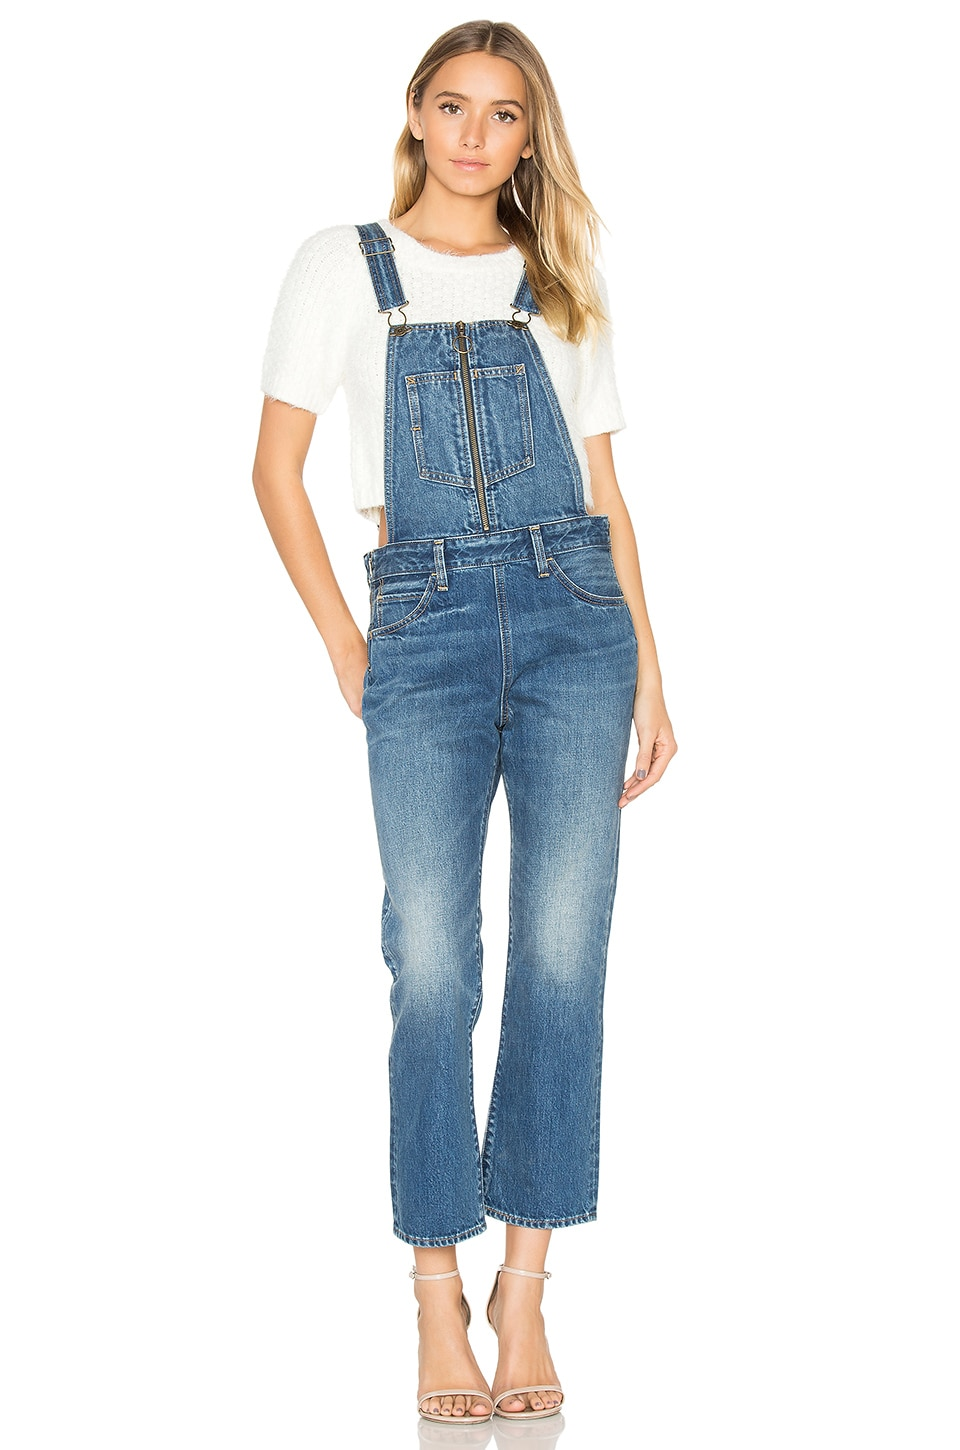 Orange Tab Overalls by LEVI'S